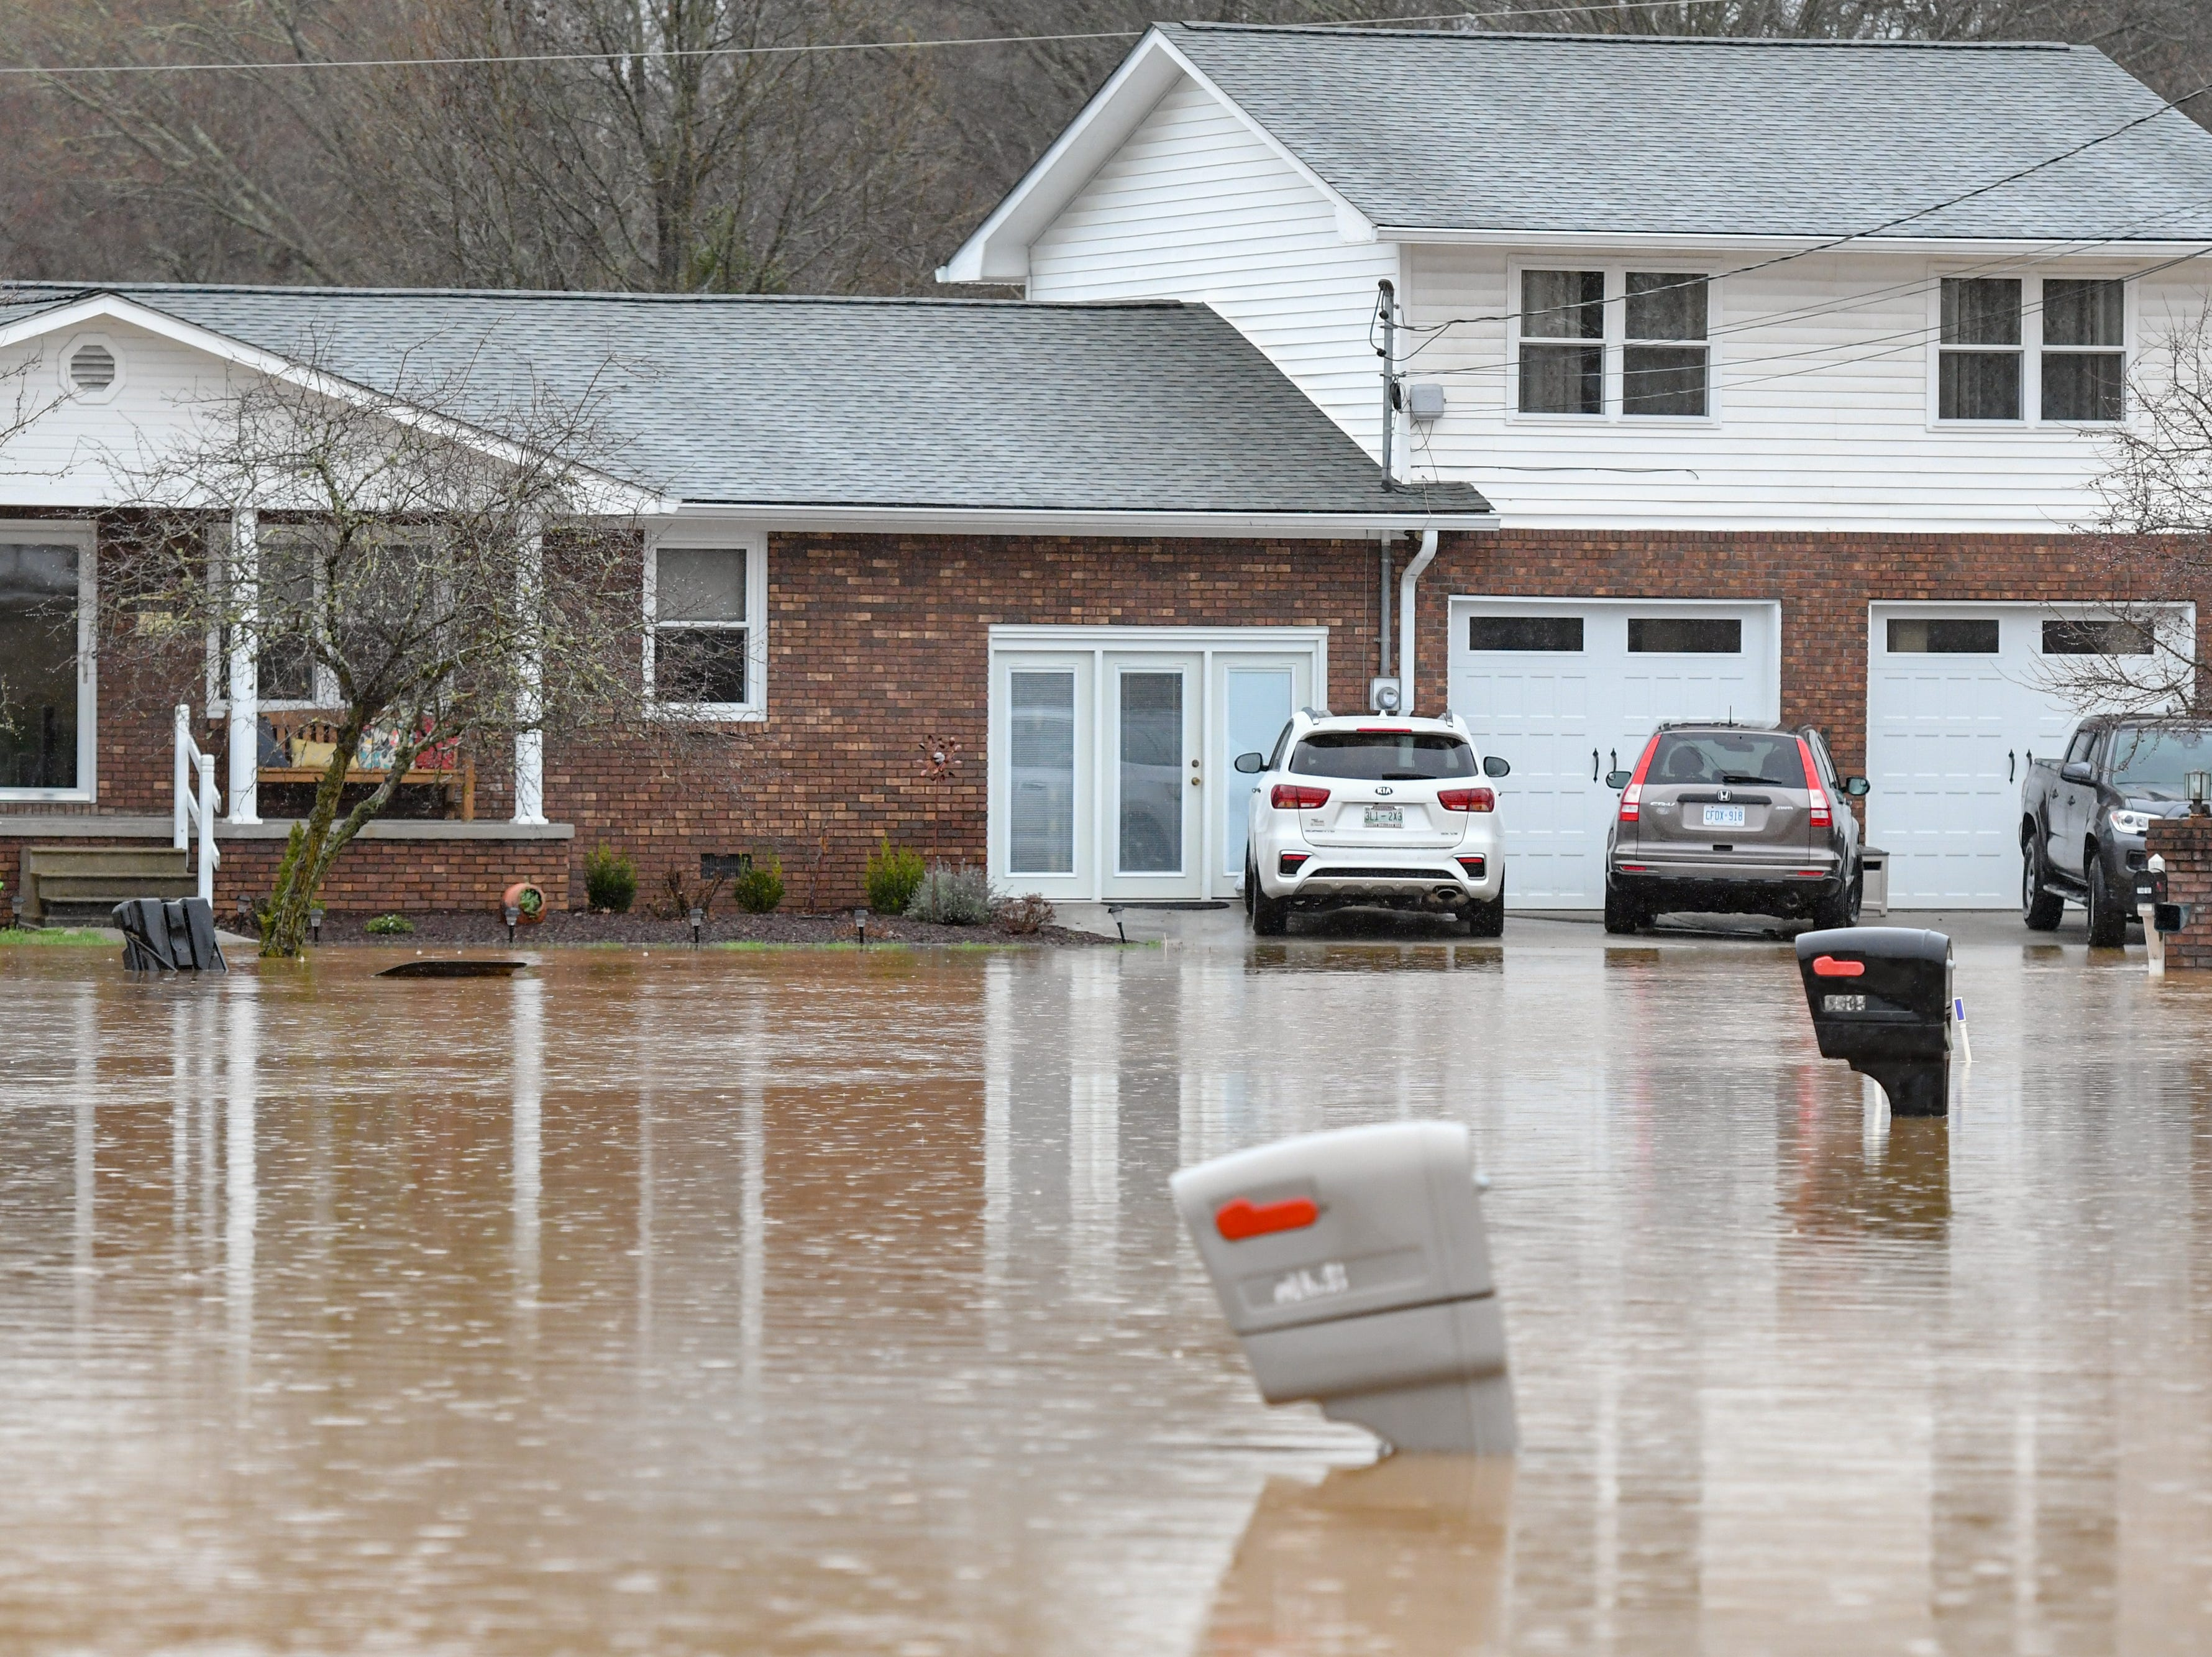 Flood waters on Lena Lane in Halls Saturday Feb. 23, 2019. The Knoxville area could see between 2 and 3 inches of rain through the weekend.